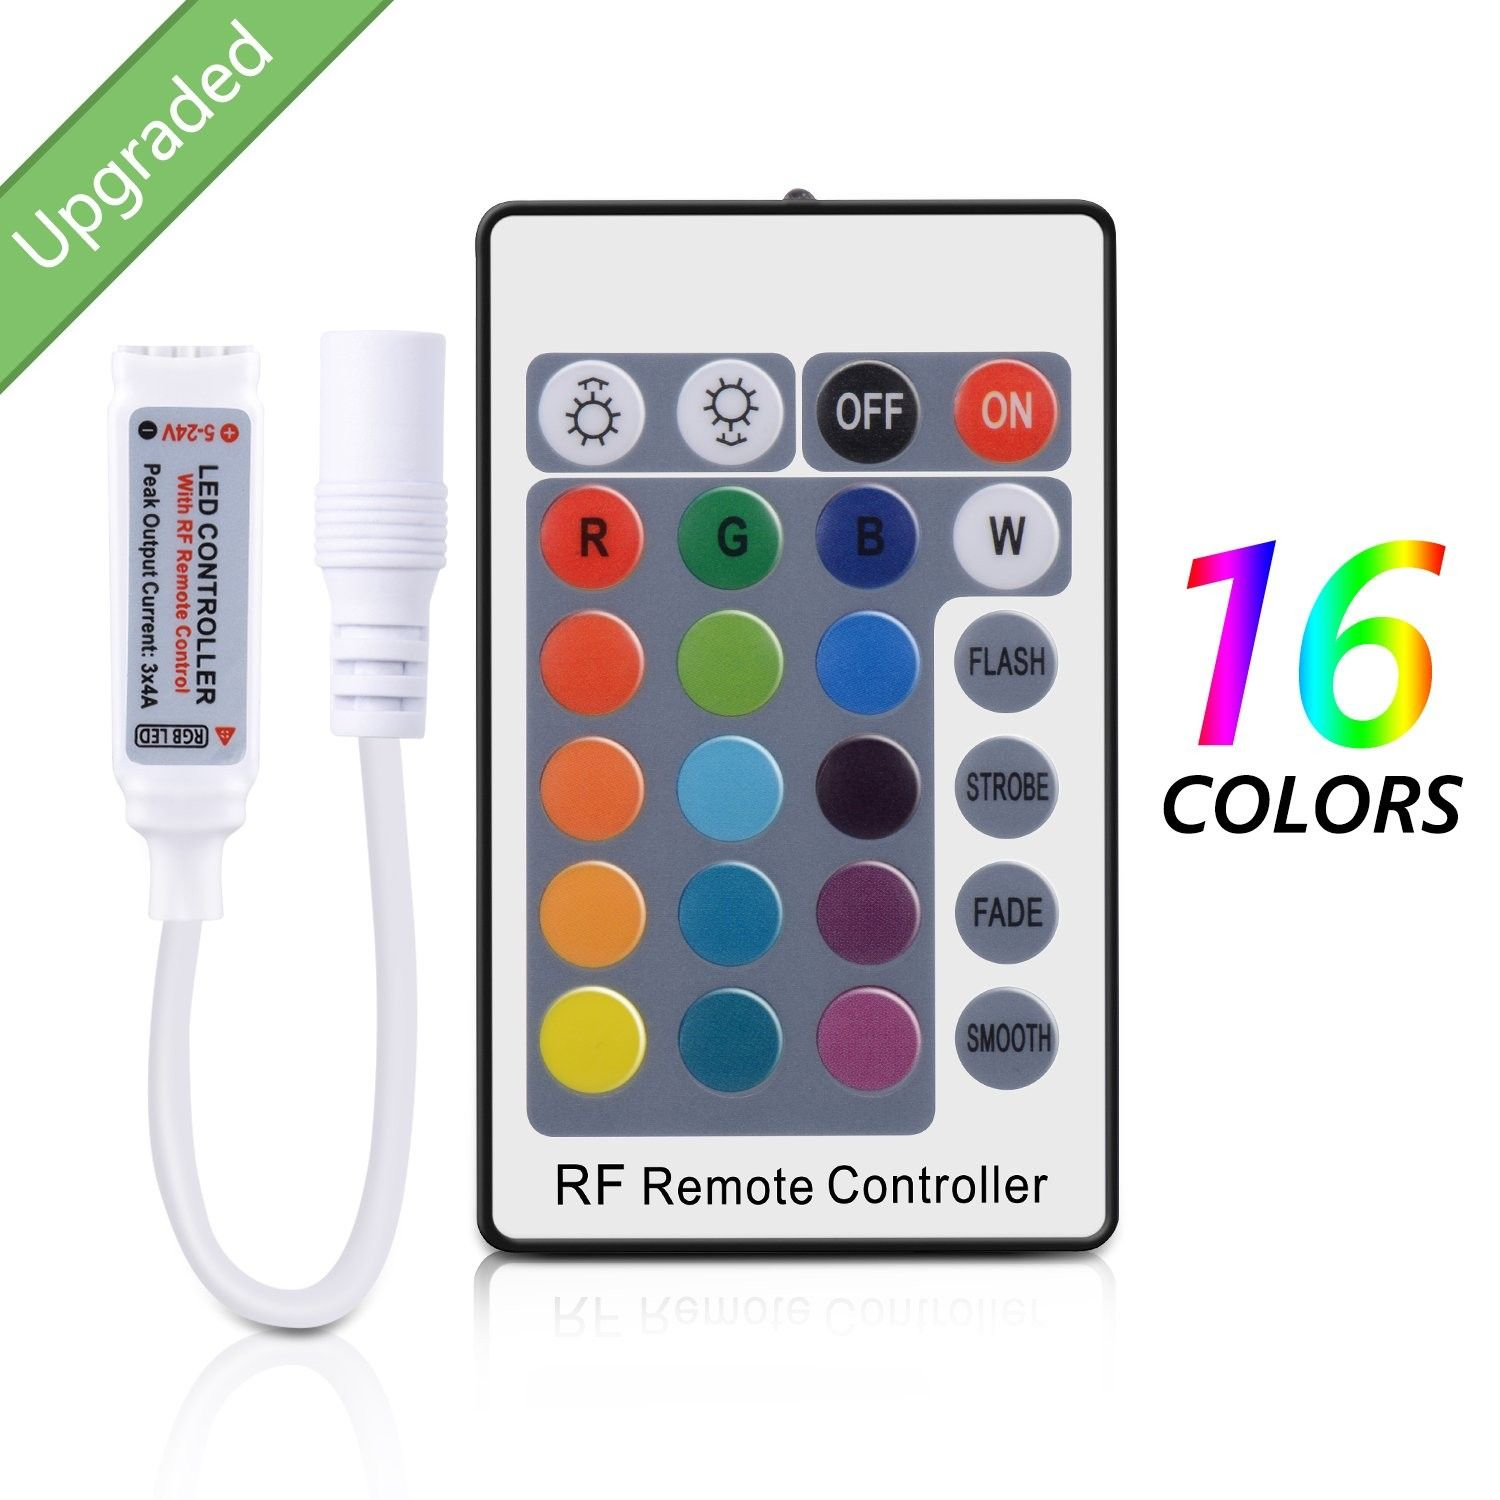 Rf Remote Controller For Rgb Color Led Strip Lights 24 Key Remote 12v Dc Multicolor Led Lights Remote Control For Dimmable 3528 5050 Strip Light 360 Degrees Con Led Strip Lighting Led Lights Led Color